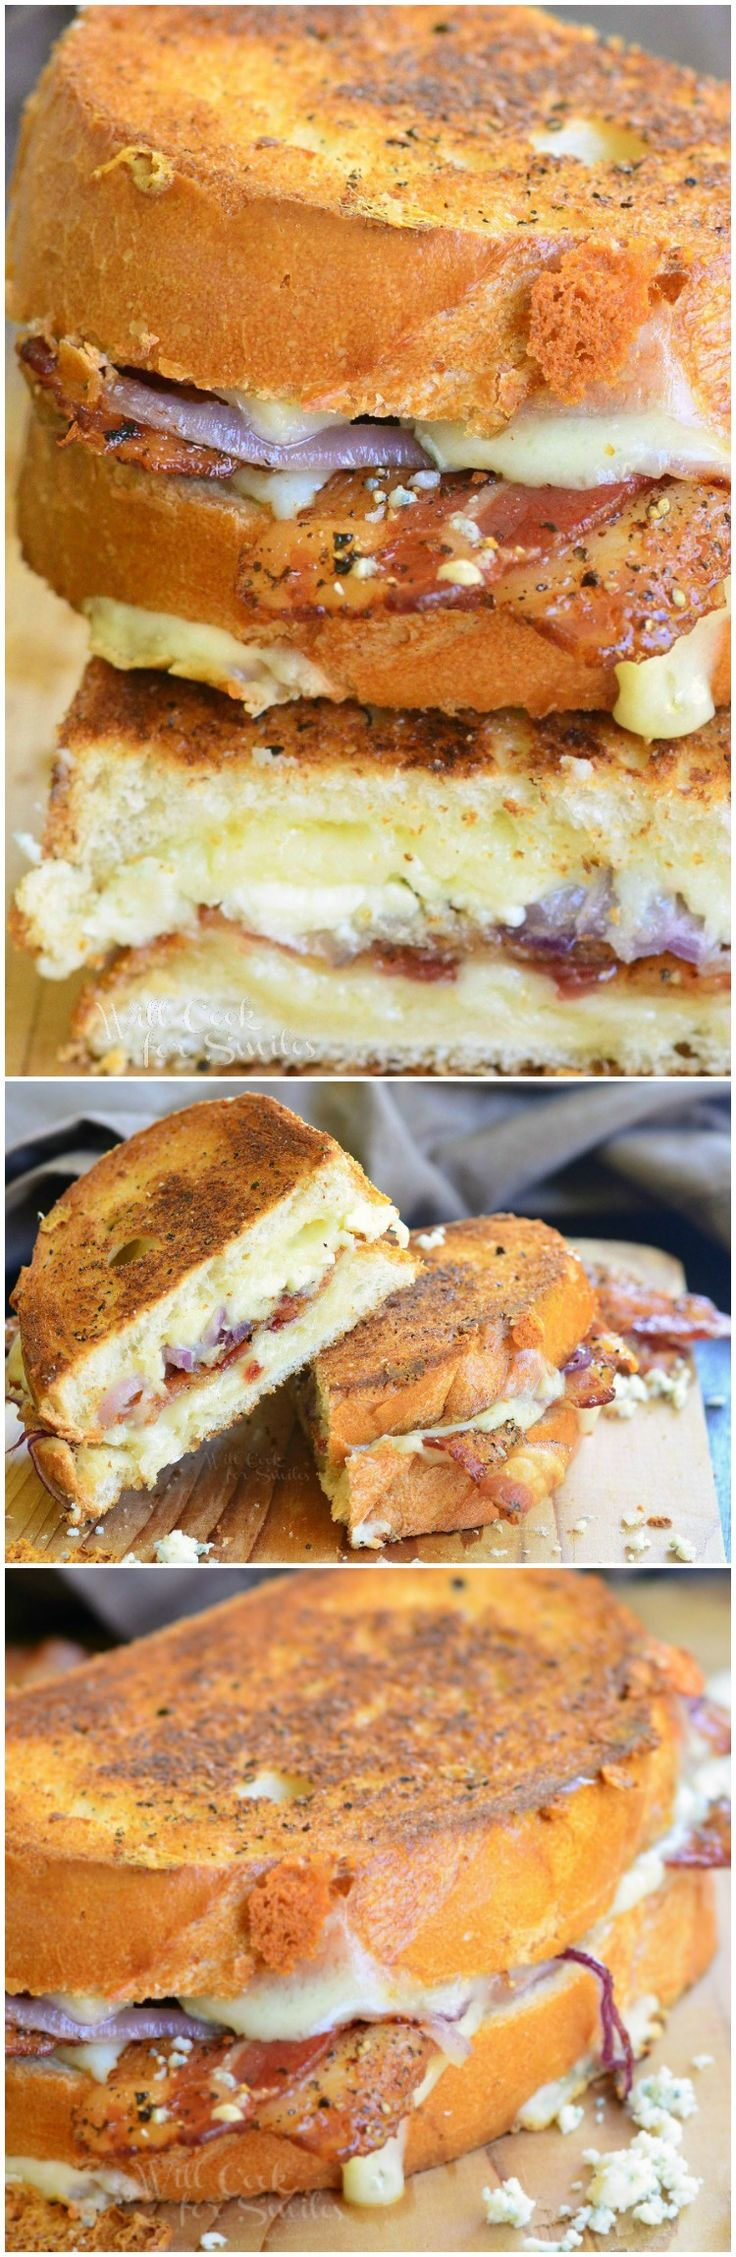 SANDWICHES - GRILLED CHEESE on Pinterest   Brie grilled cheeses, Bacon ...